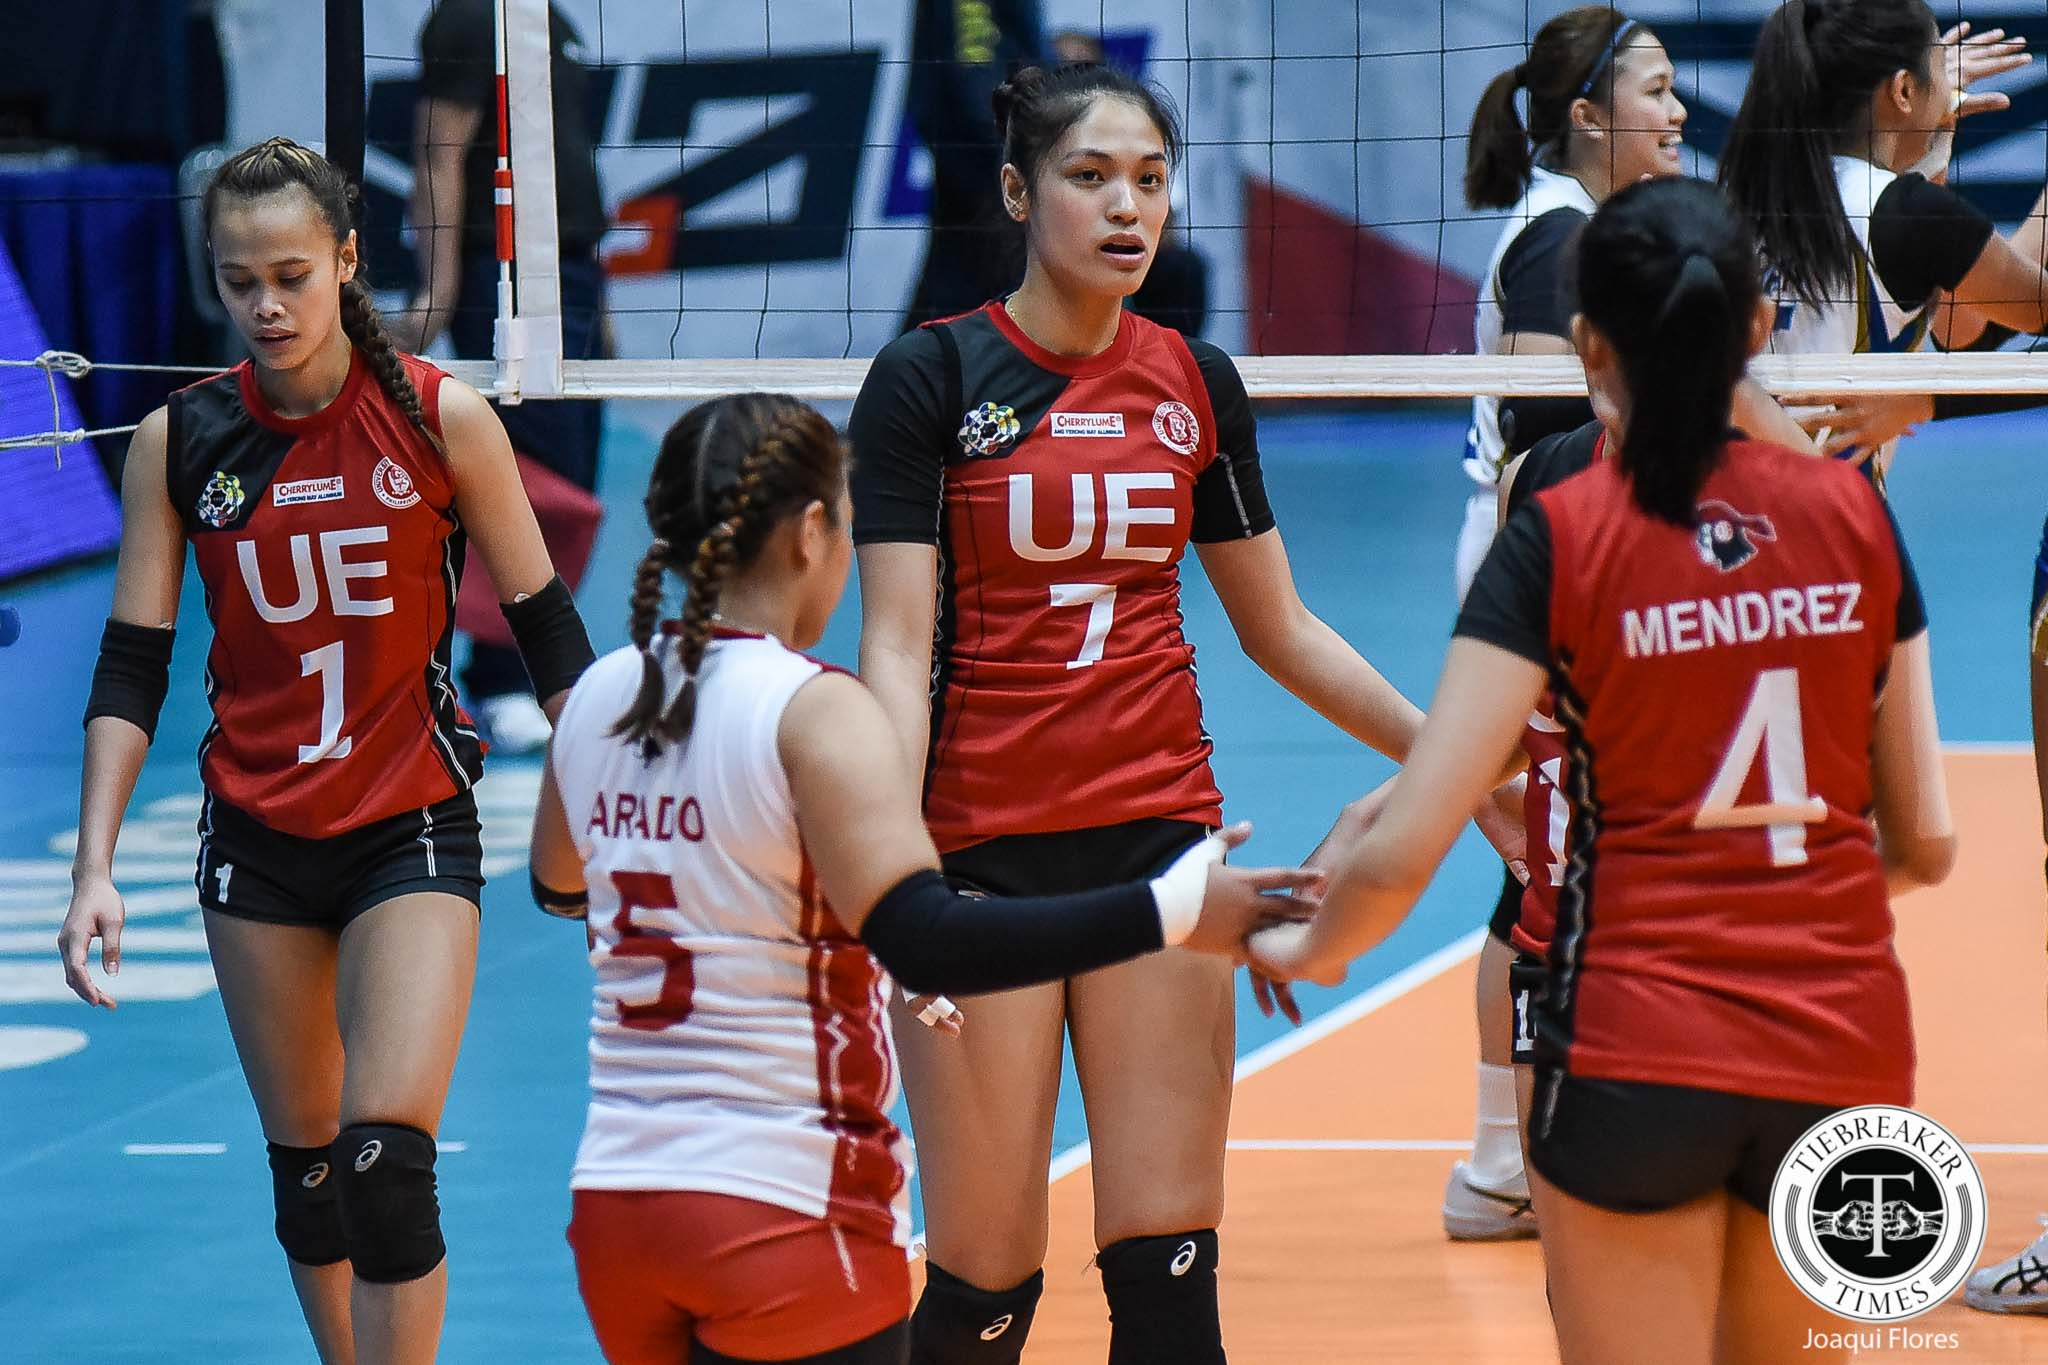 Tiebreaker Times Karl Dimaculangan finding voice as young coach to UE Lady Warriors News UAAP UE Volleyball  UE Women's Volleyball UAAP Season 81 Women's Volleyball UAAP Season 81 Karl Dimaculangan